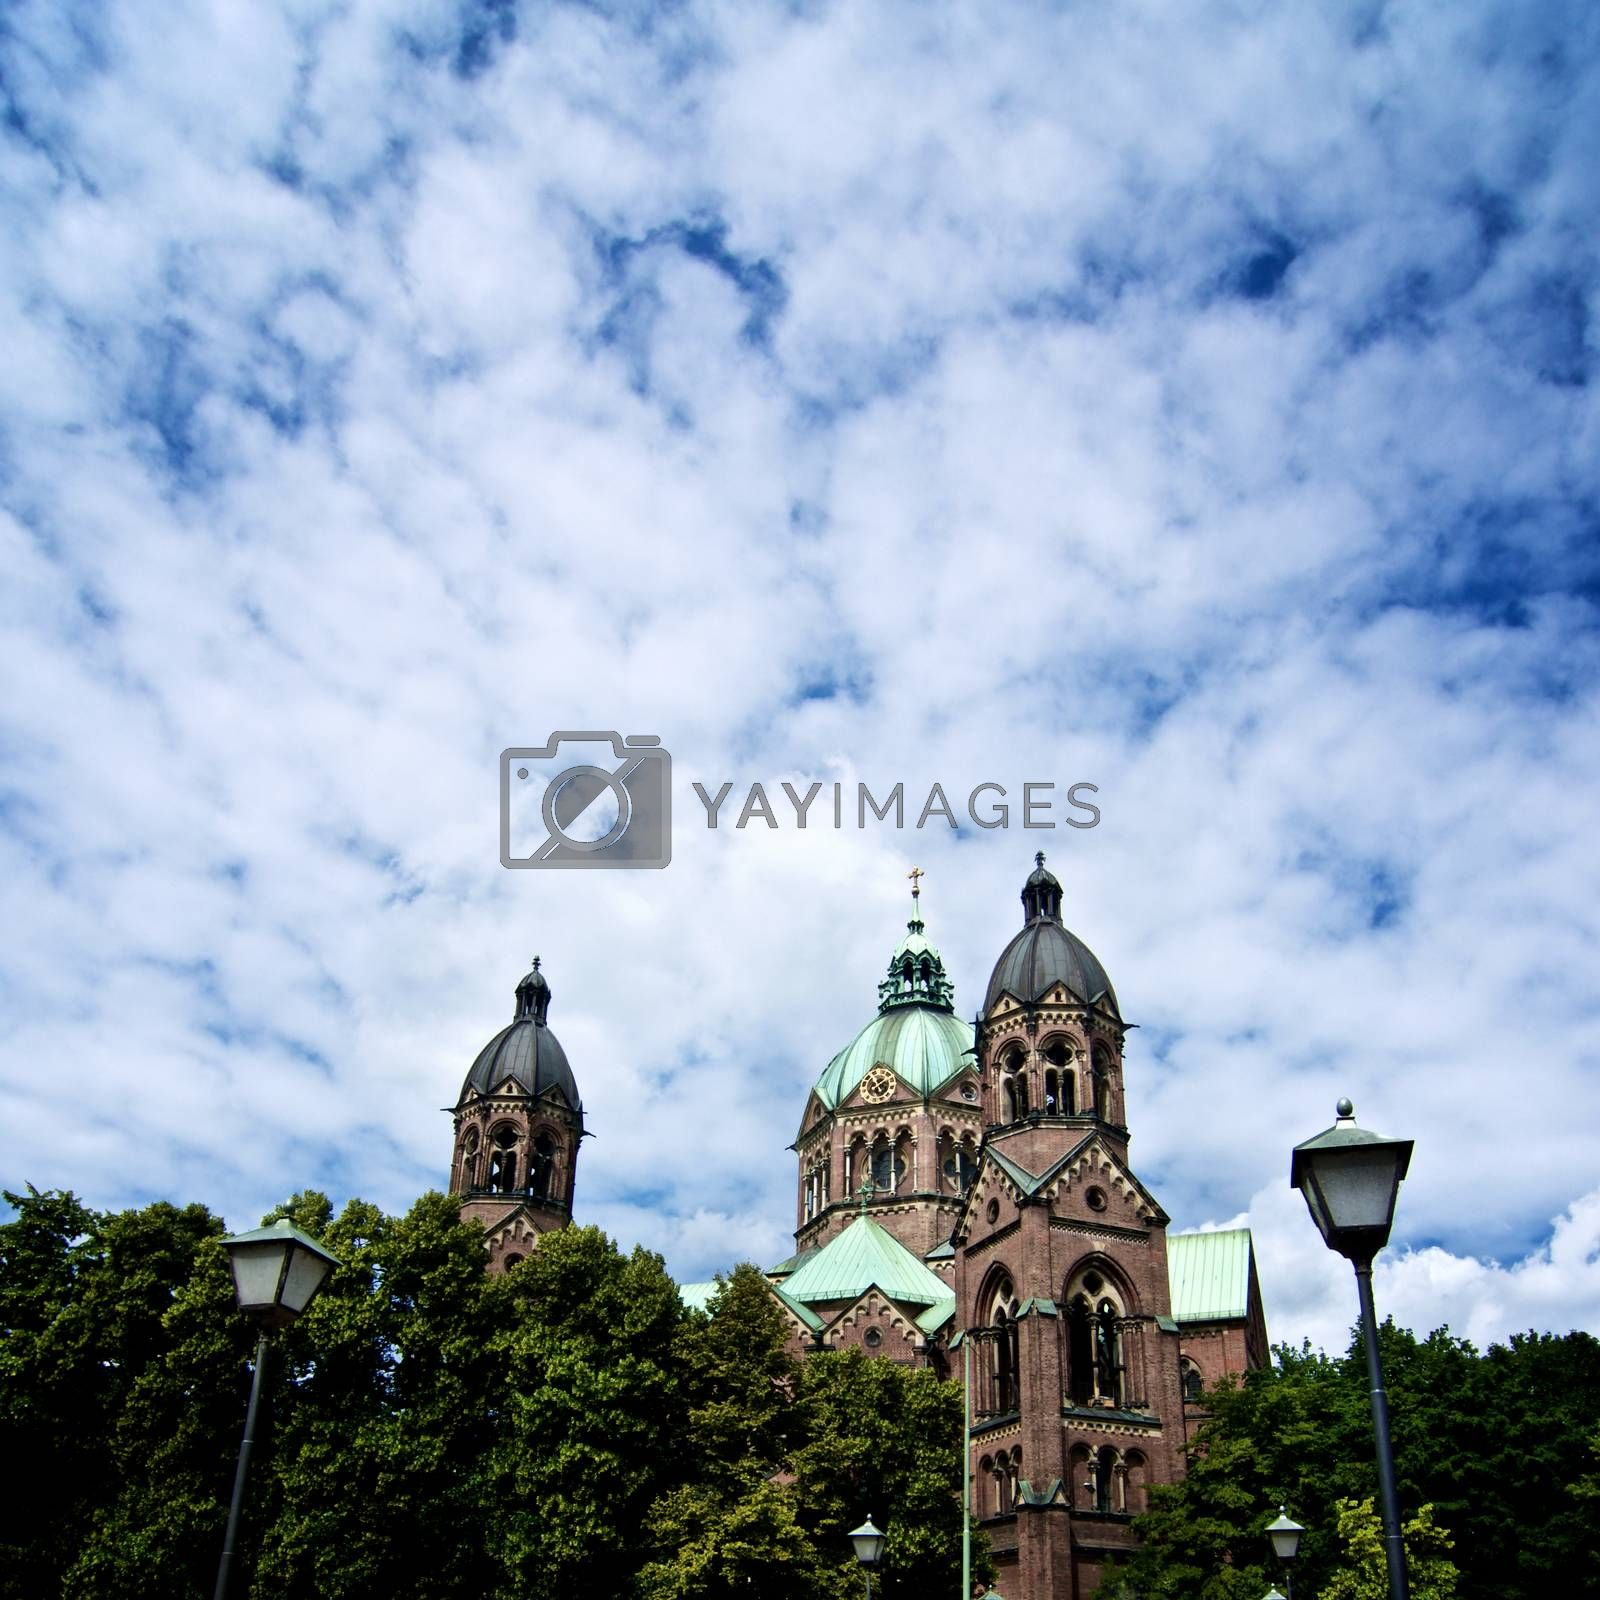 Domes of St. Lukas Church - Lukaskirche against Cloudy Sky Outdoors. Munich, Bavaria, Germany